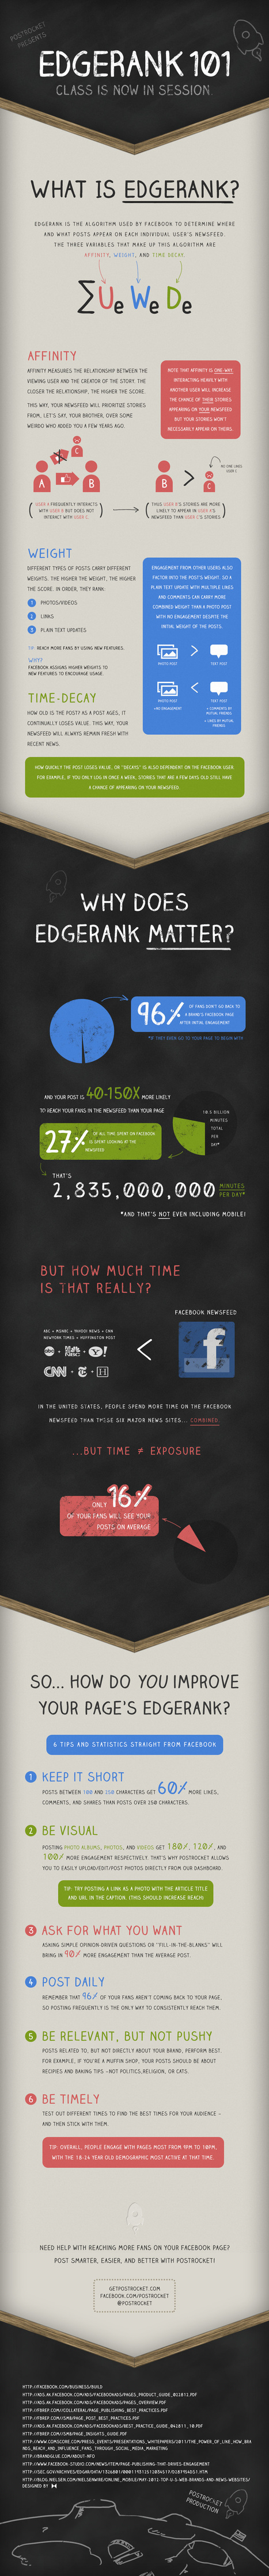 How to increase the visibility of your Facebook Page [infographic] | Cultura de massa no Século XXI (Mass Culture in the XXI Century) | Scoop.it